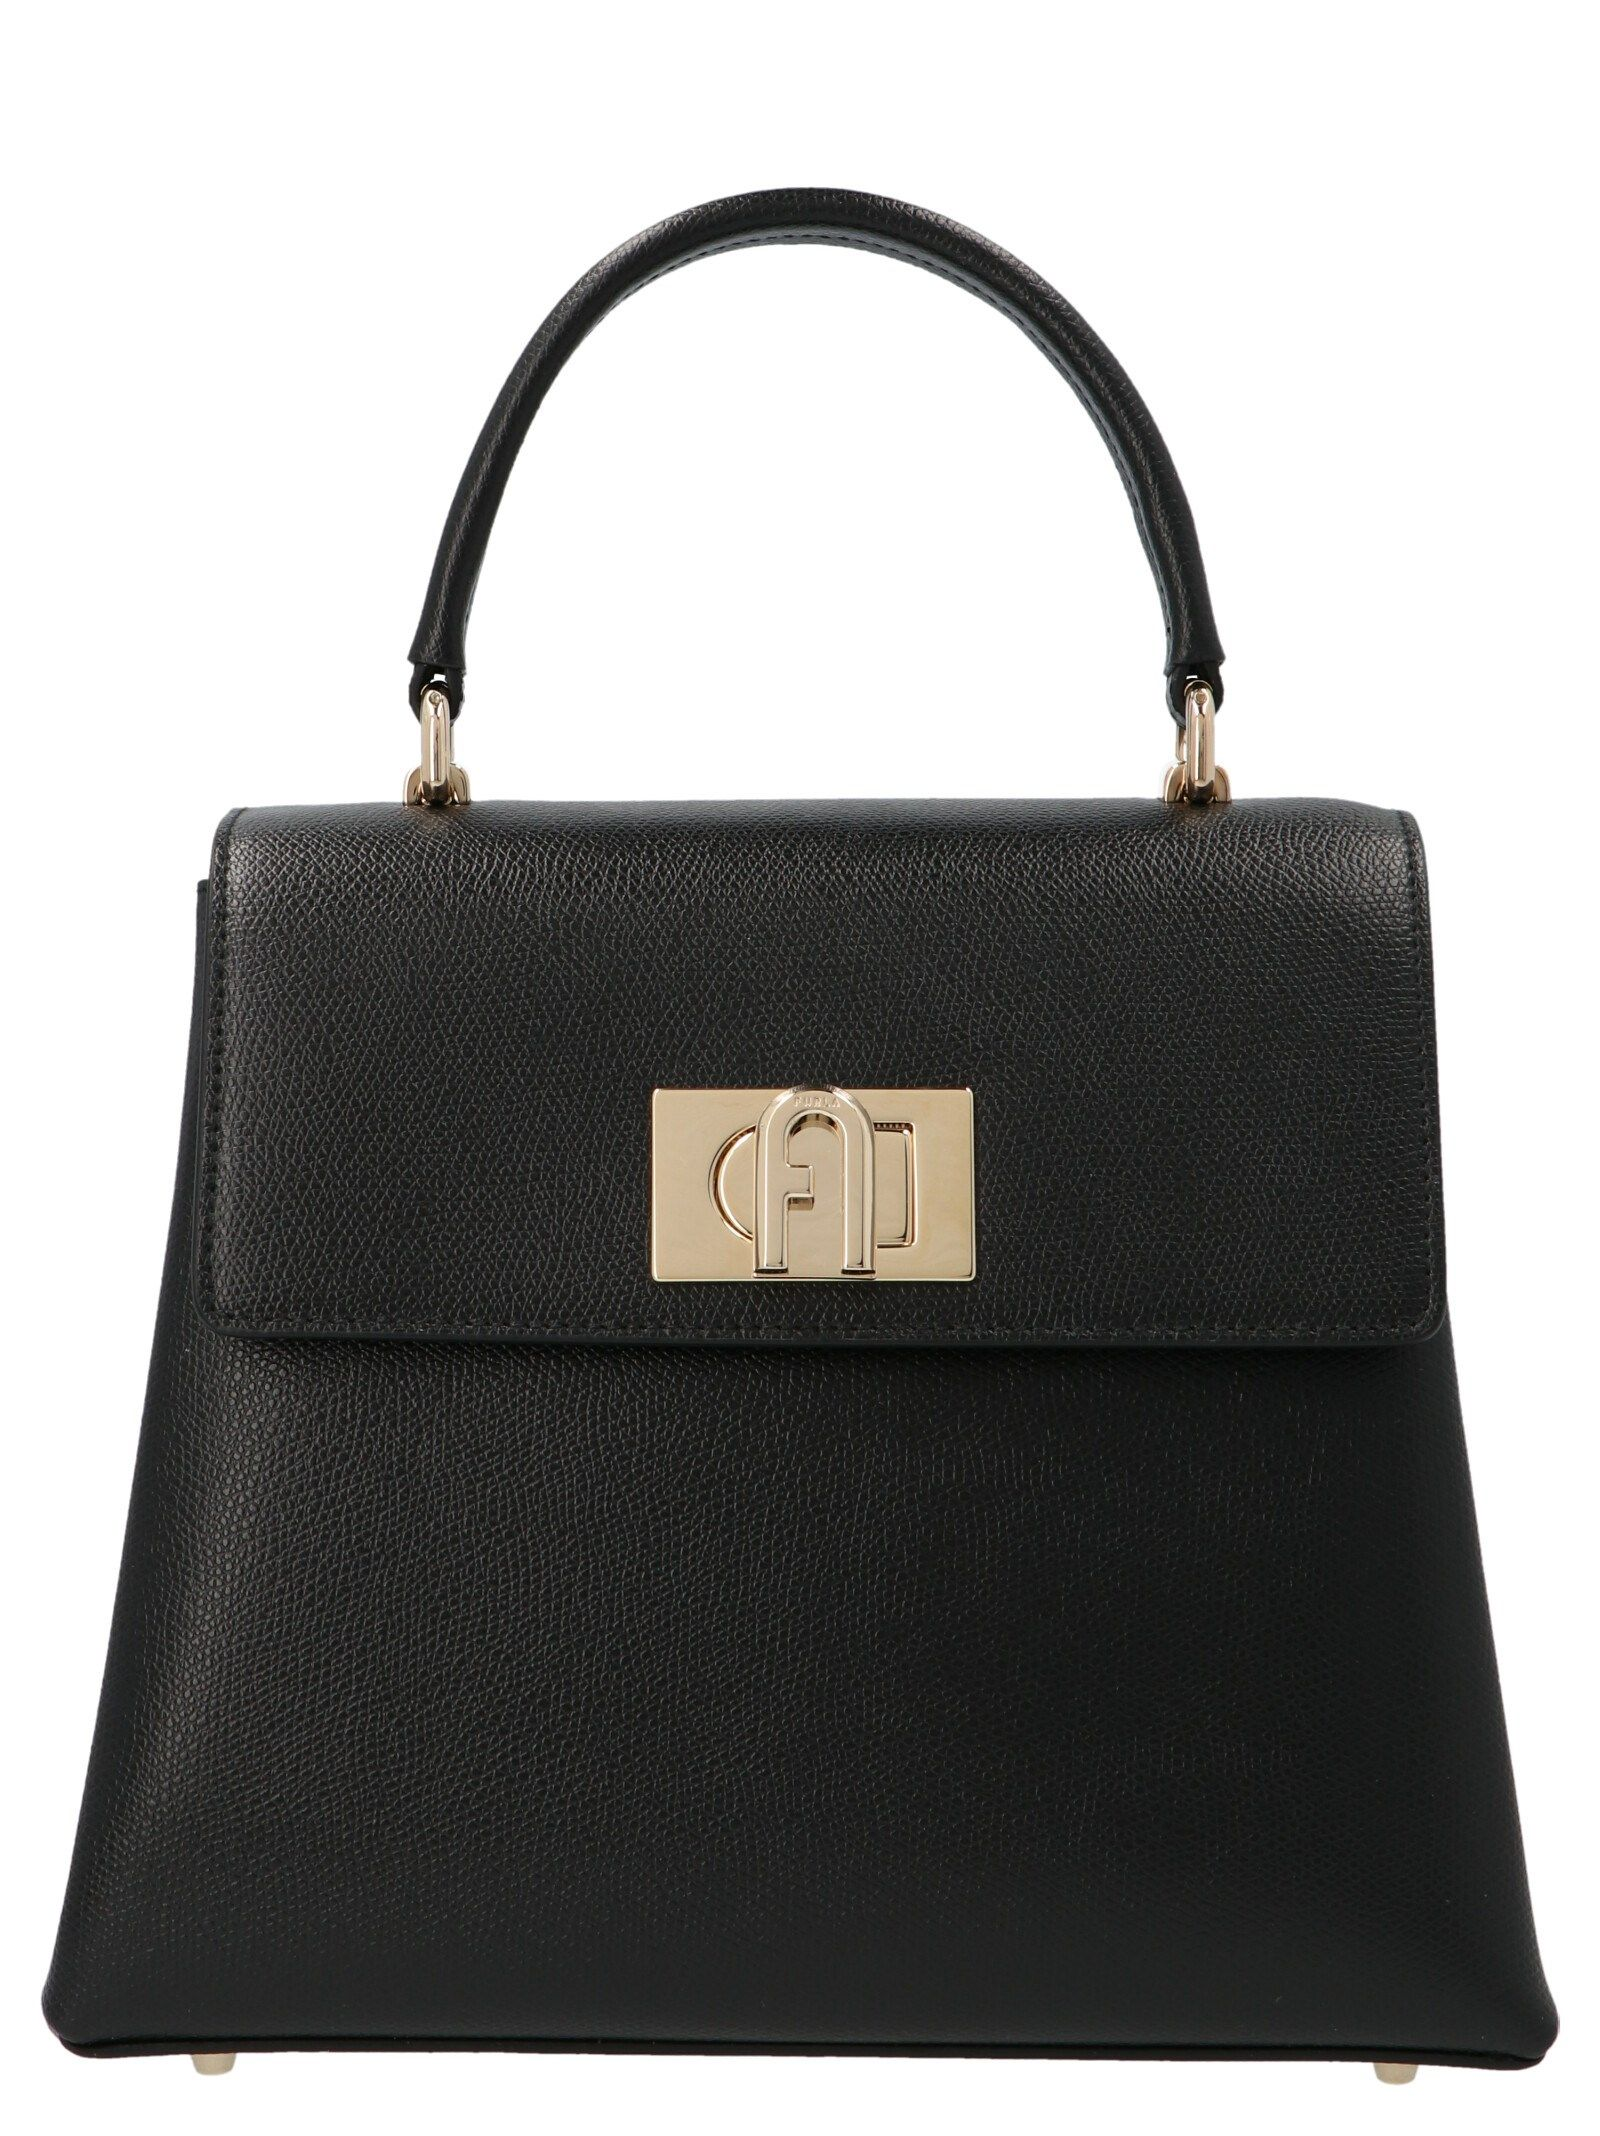 Furla FURLA WOMEN'S BAKPACOARE000O6000 BLACK OTHER MATERIALS HANDBAG